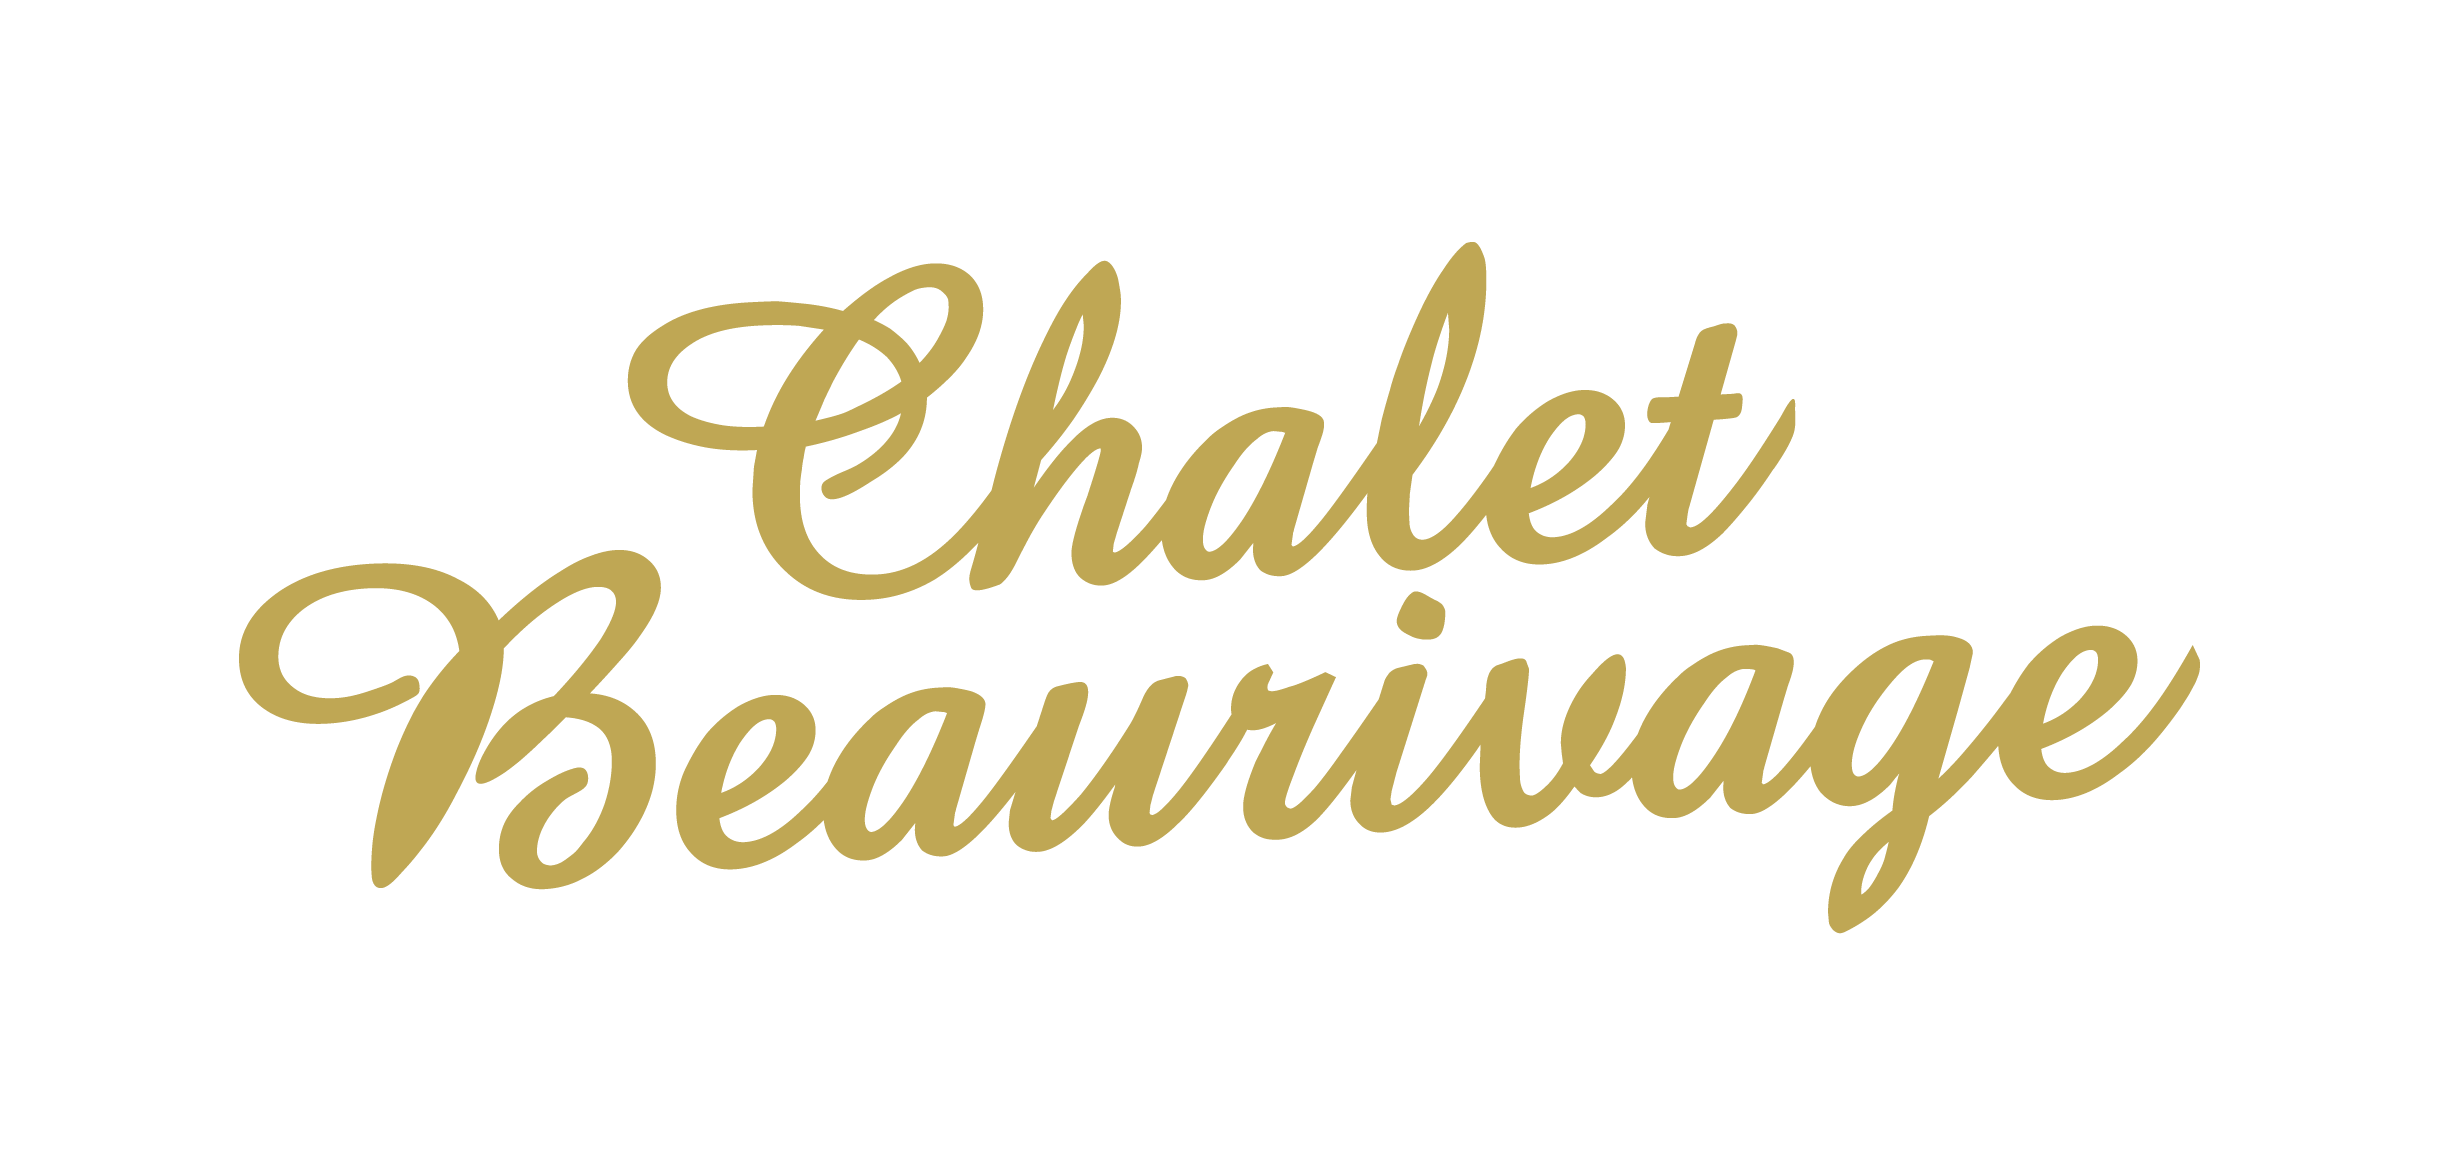 Welcome to Chalet Beaurivage in Pierre la Treiche - Chalet Beaurivage